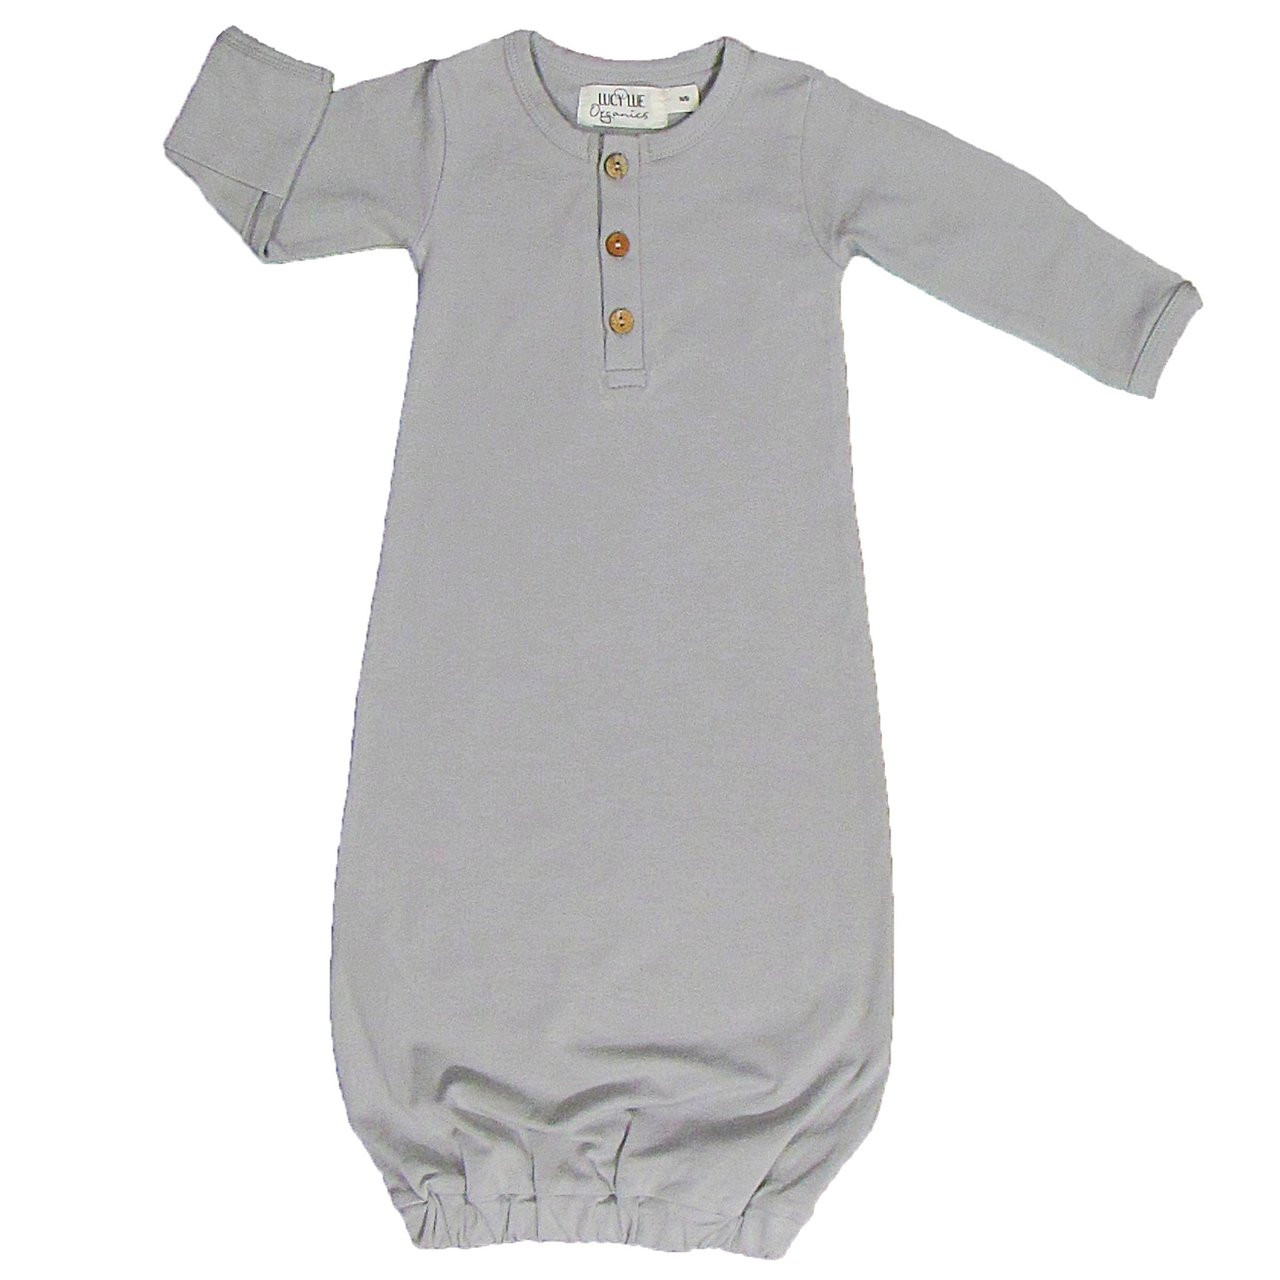 Organic Baby Snuggle Gown, Stone Grey - Spearmint Ventures, LLC